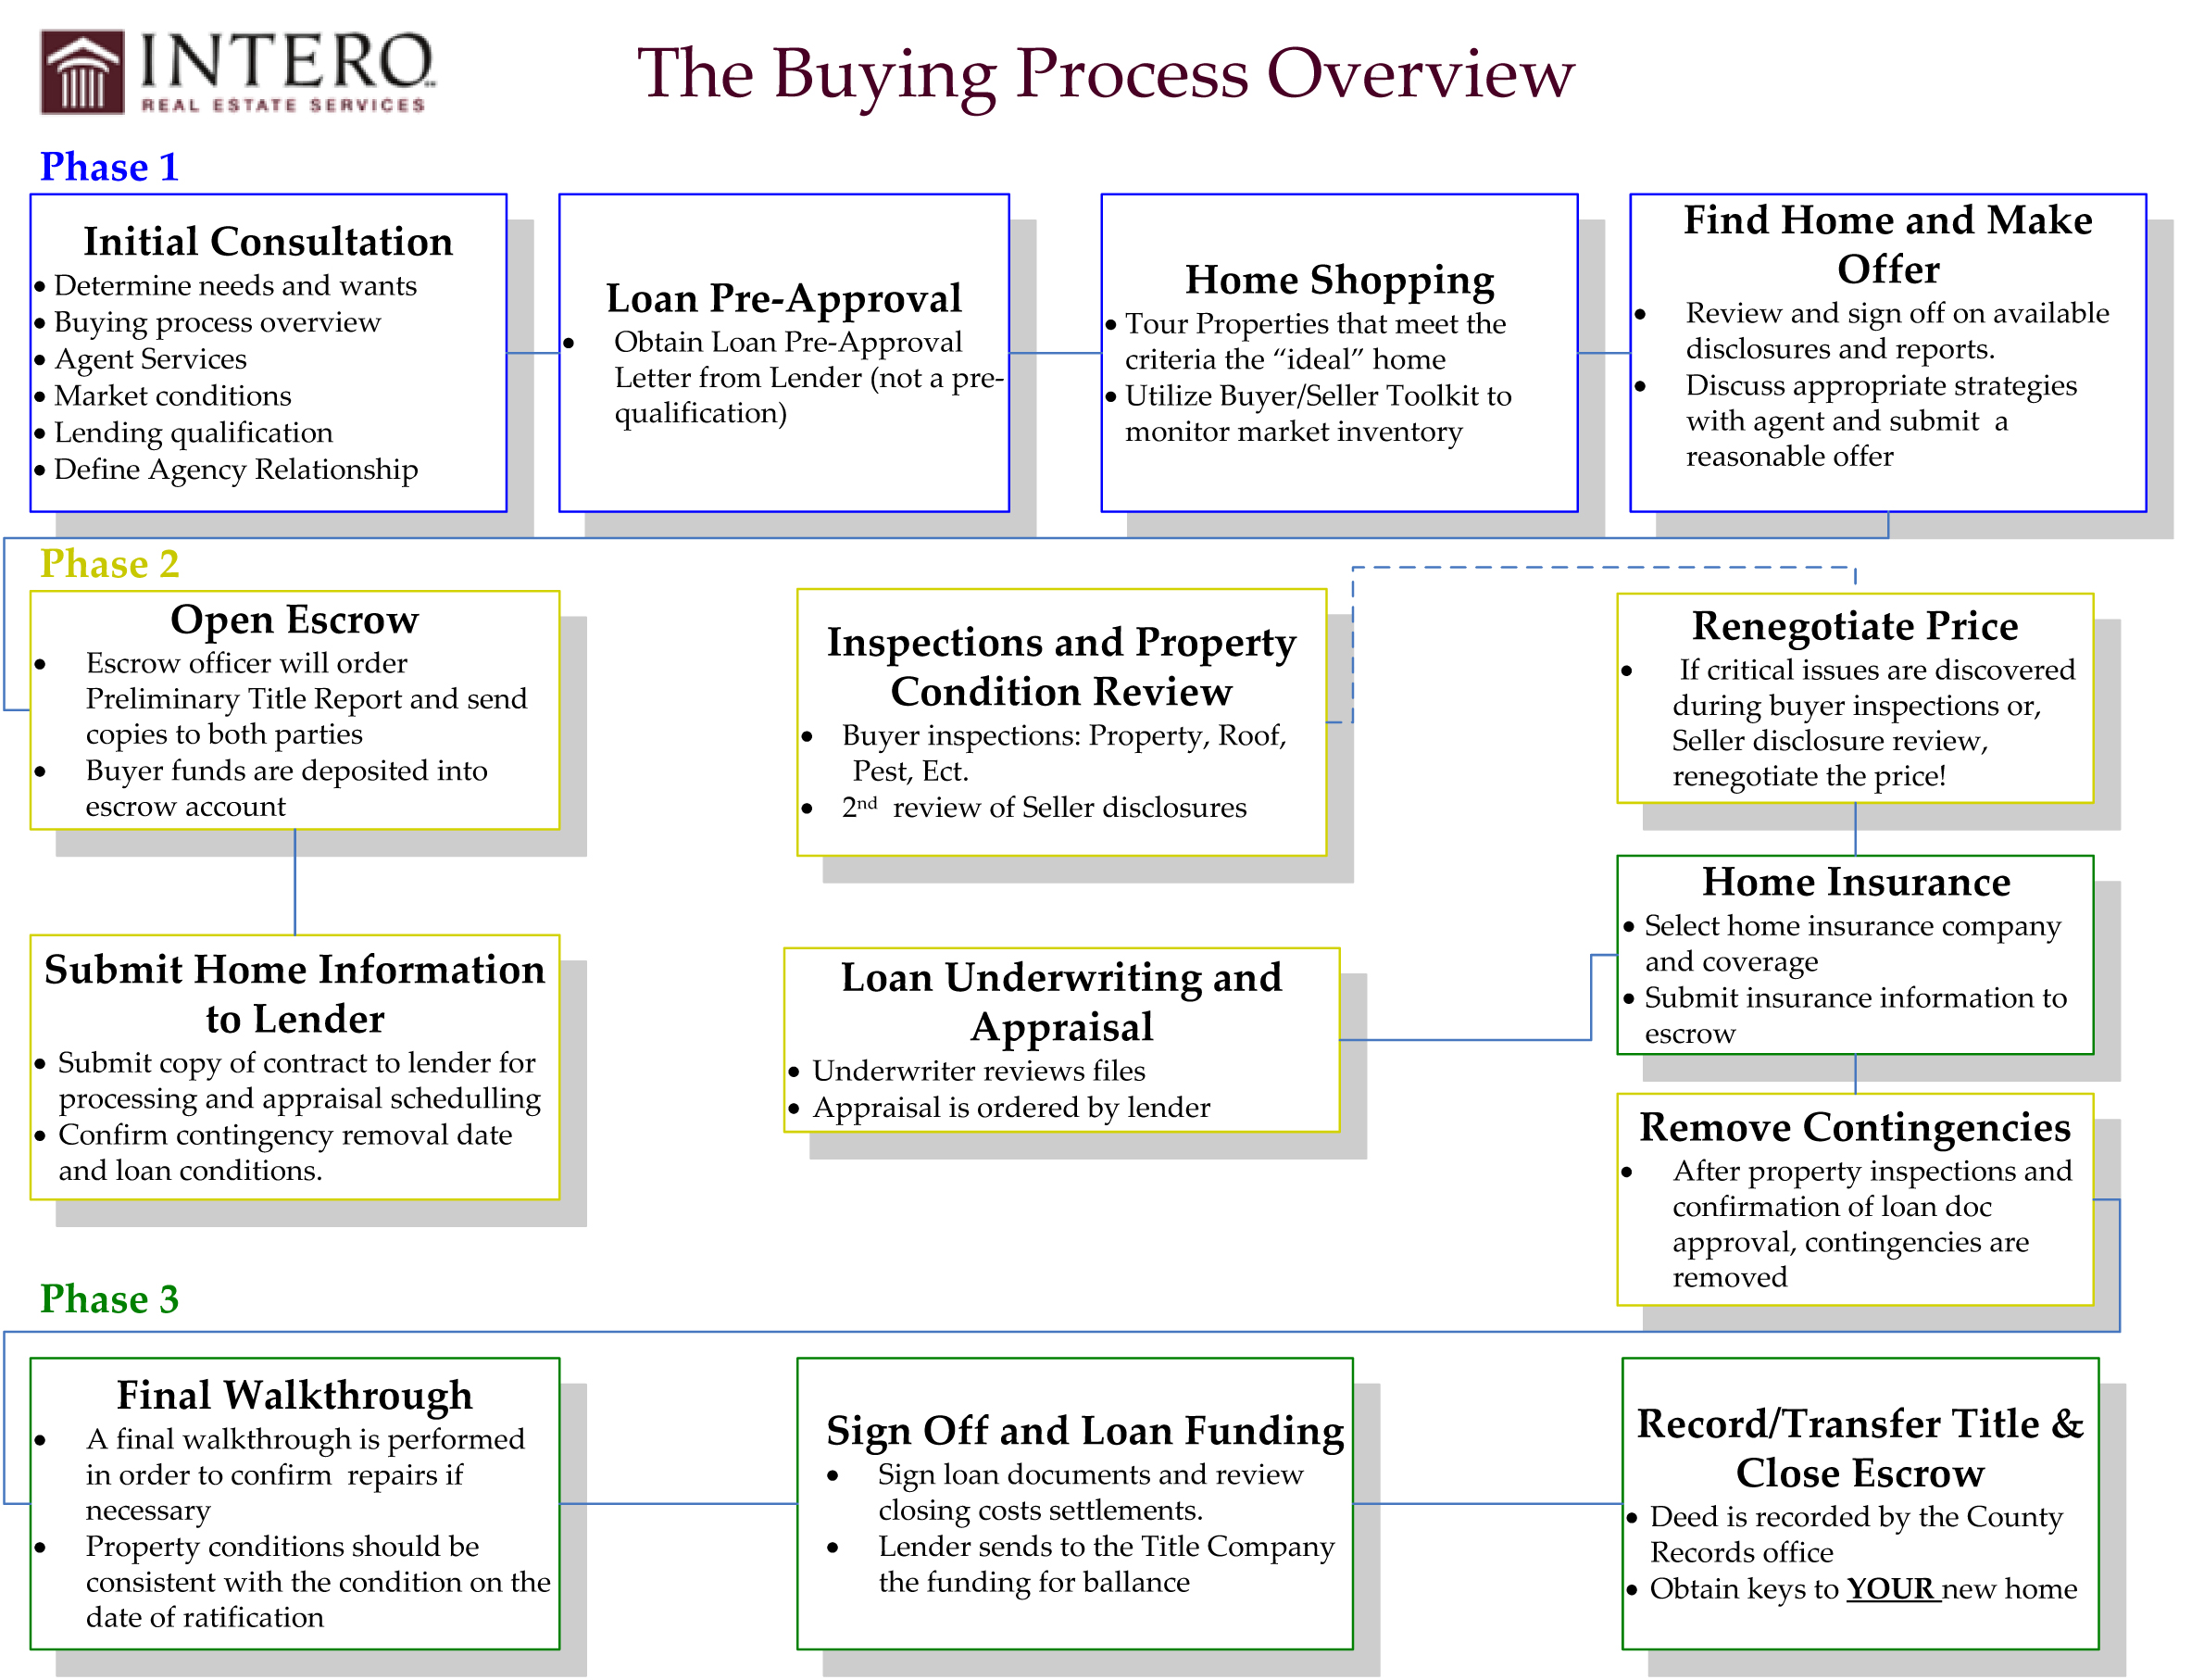 Home Buying Process on Selling Home Real Estate Timeline